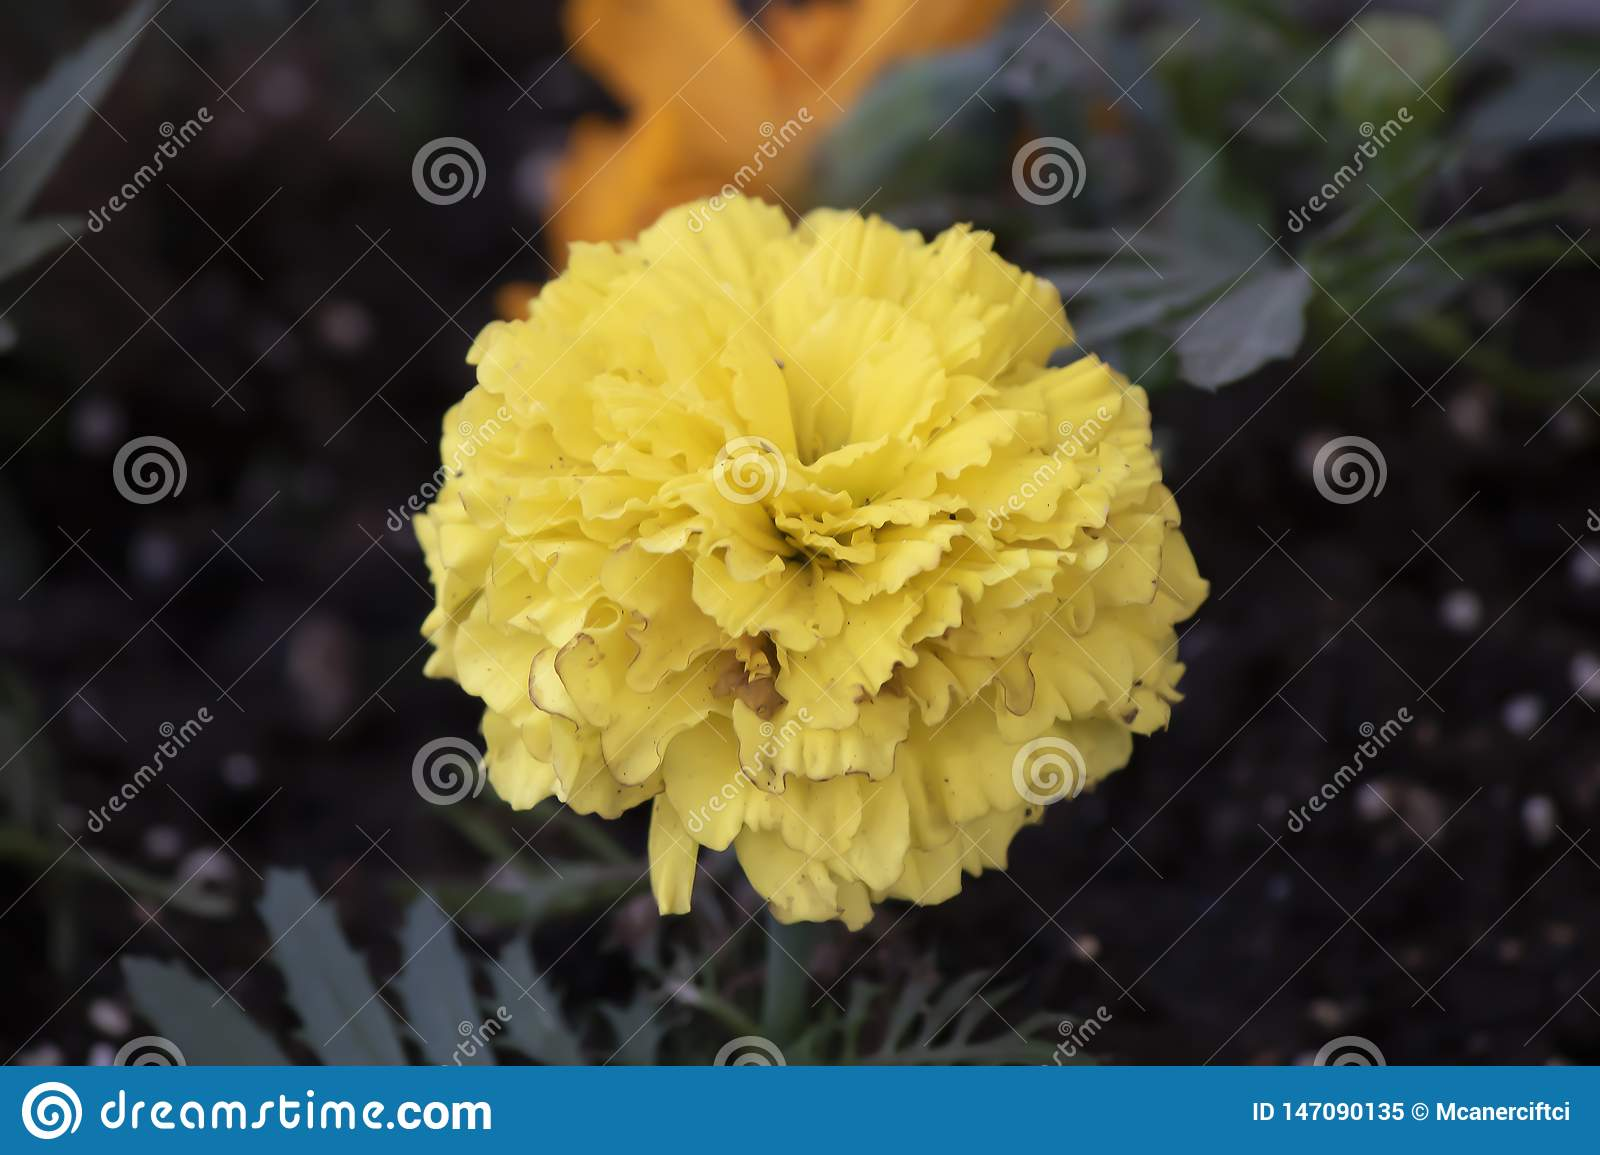 Tagetes patula or Mister macestic flowers